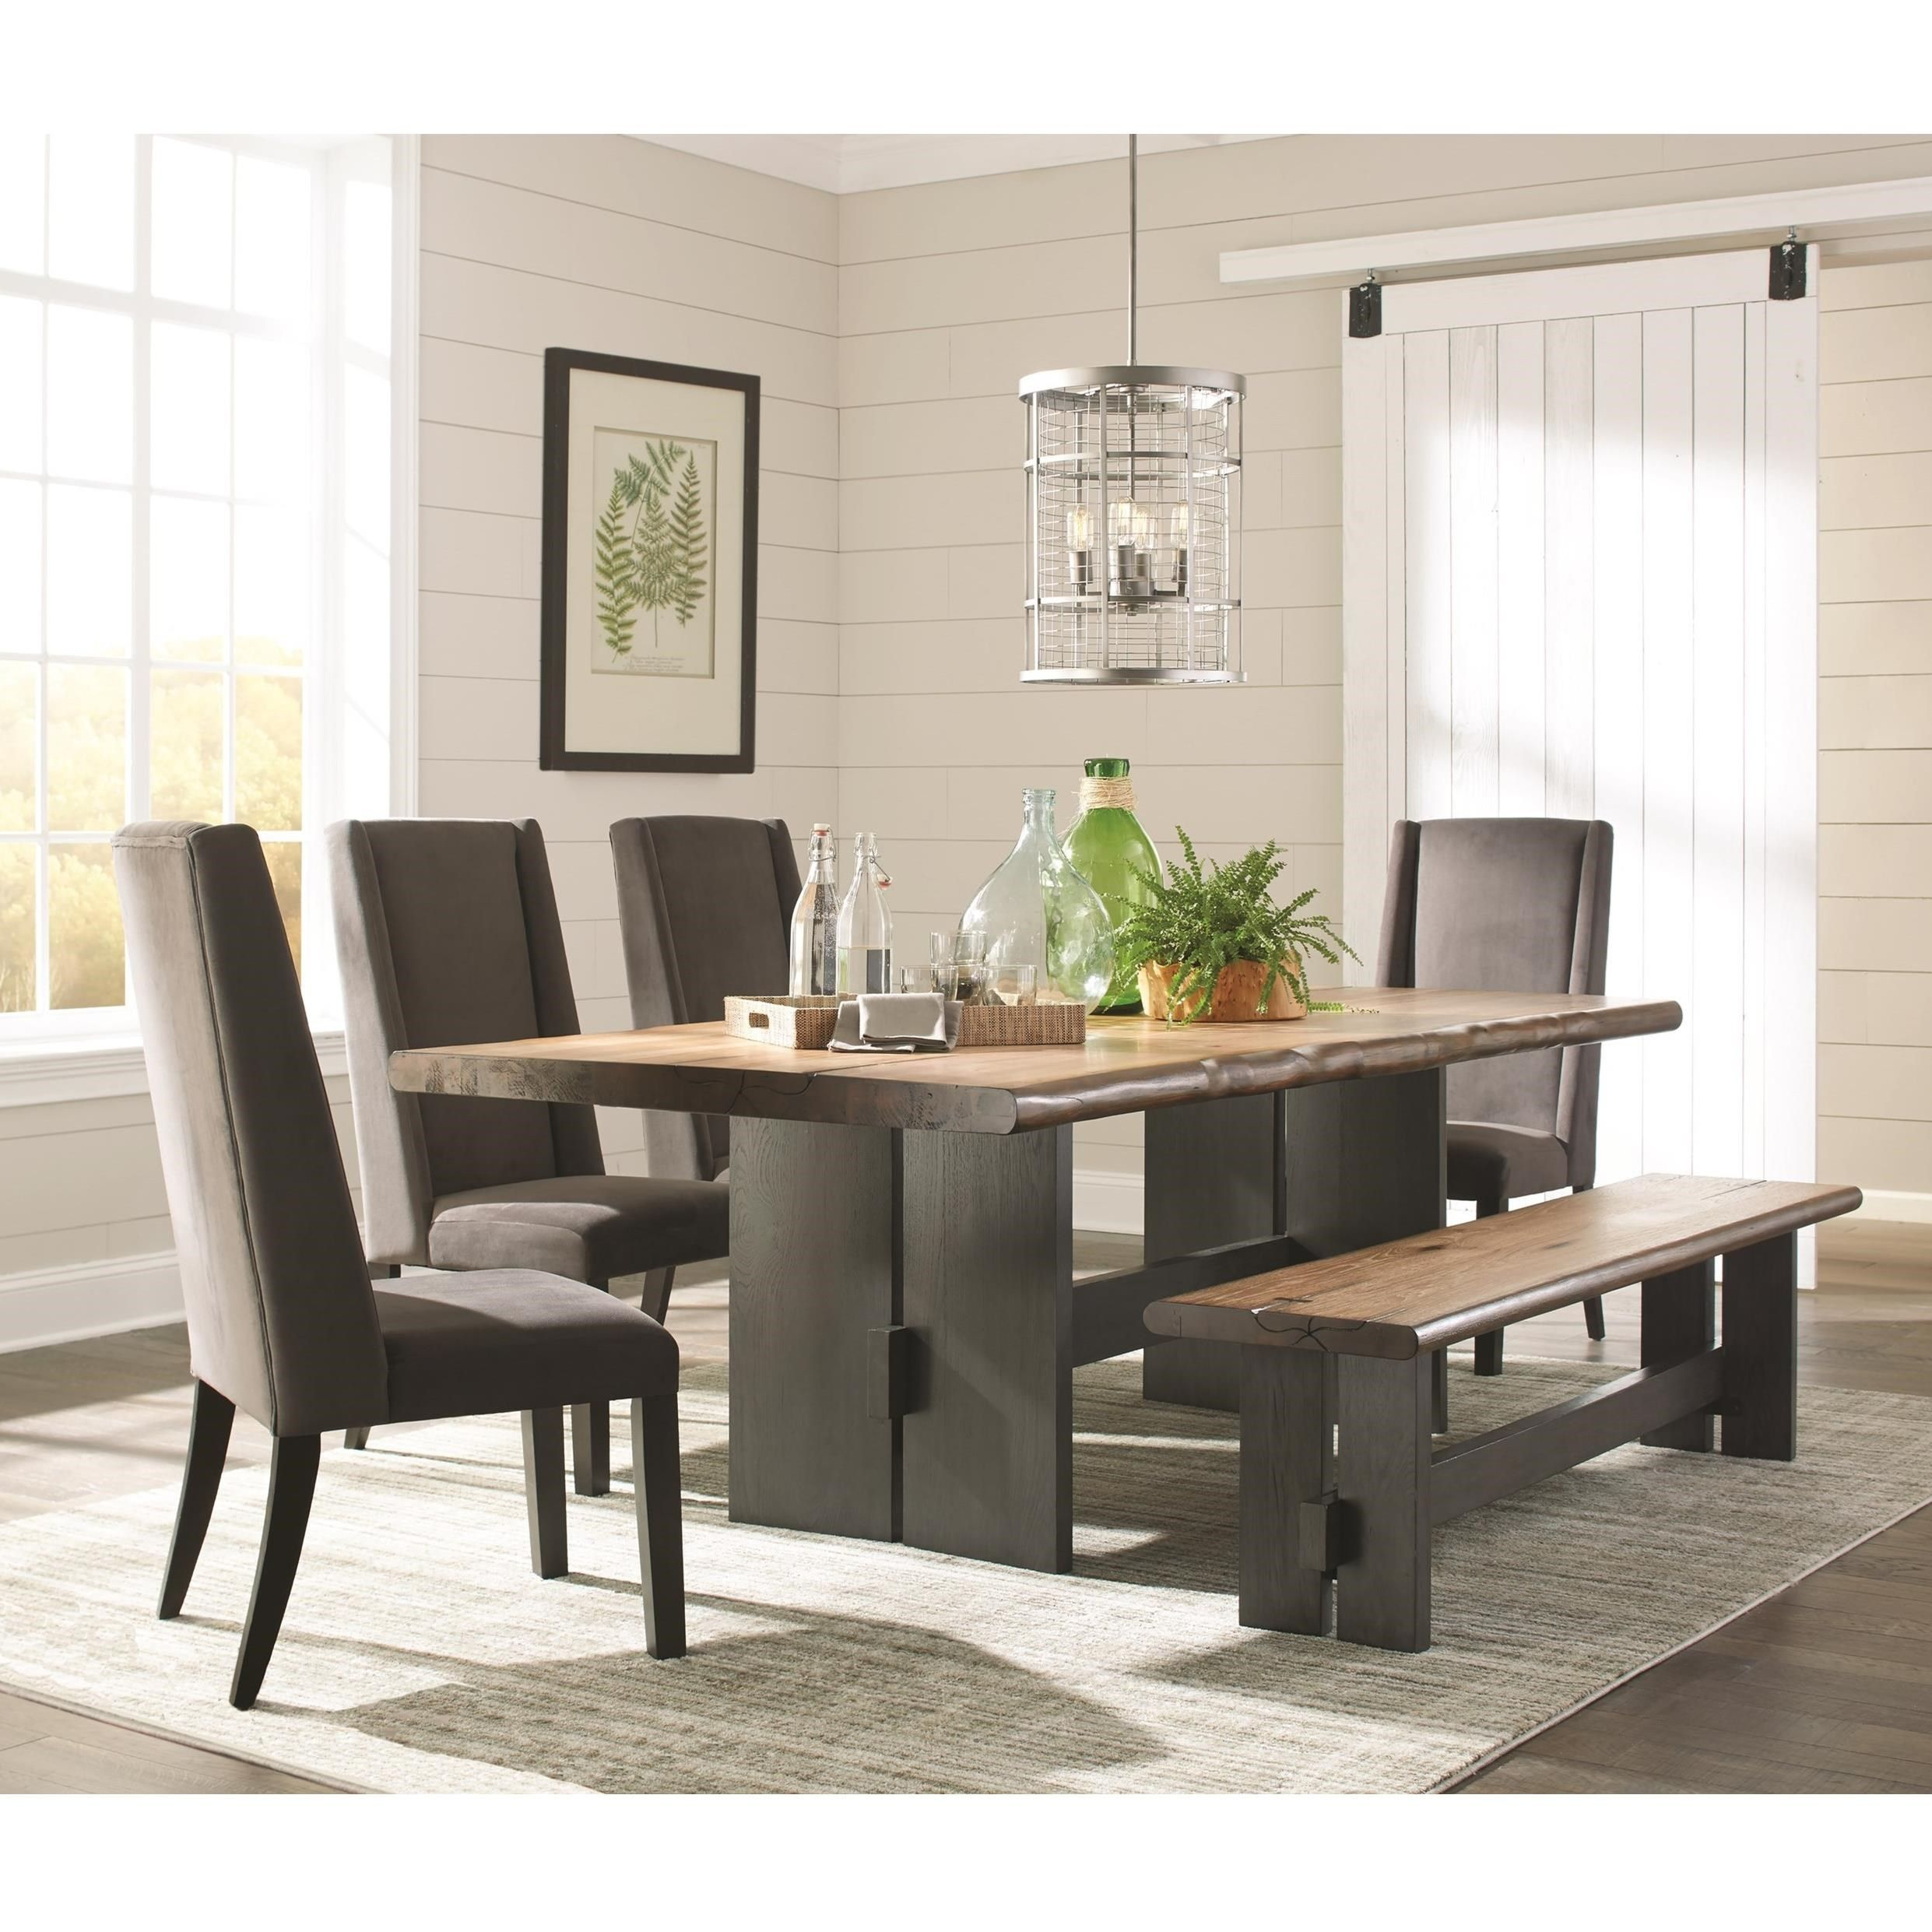 Scott Living Marquette Live Edge Dining Table Set with ...